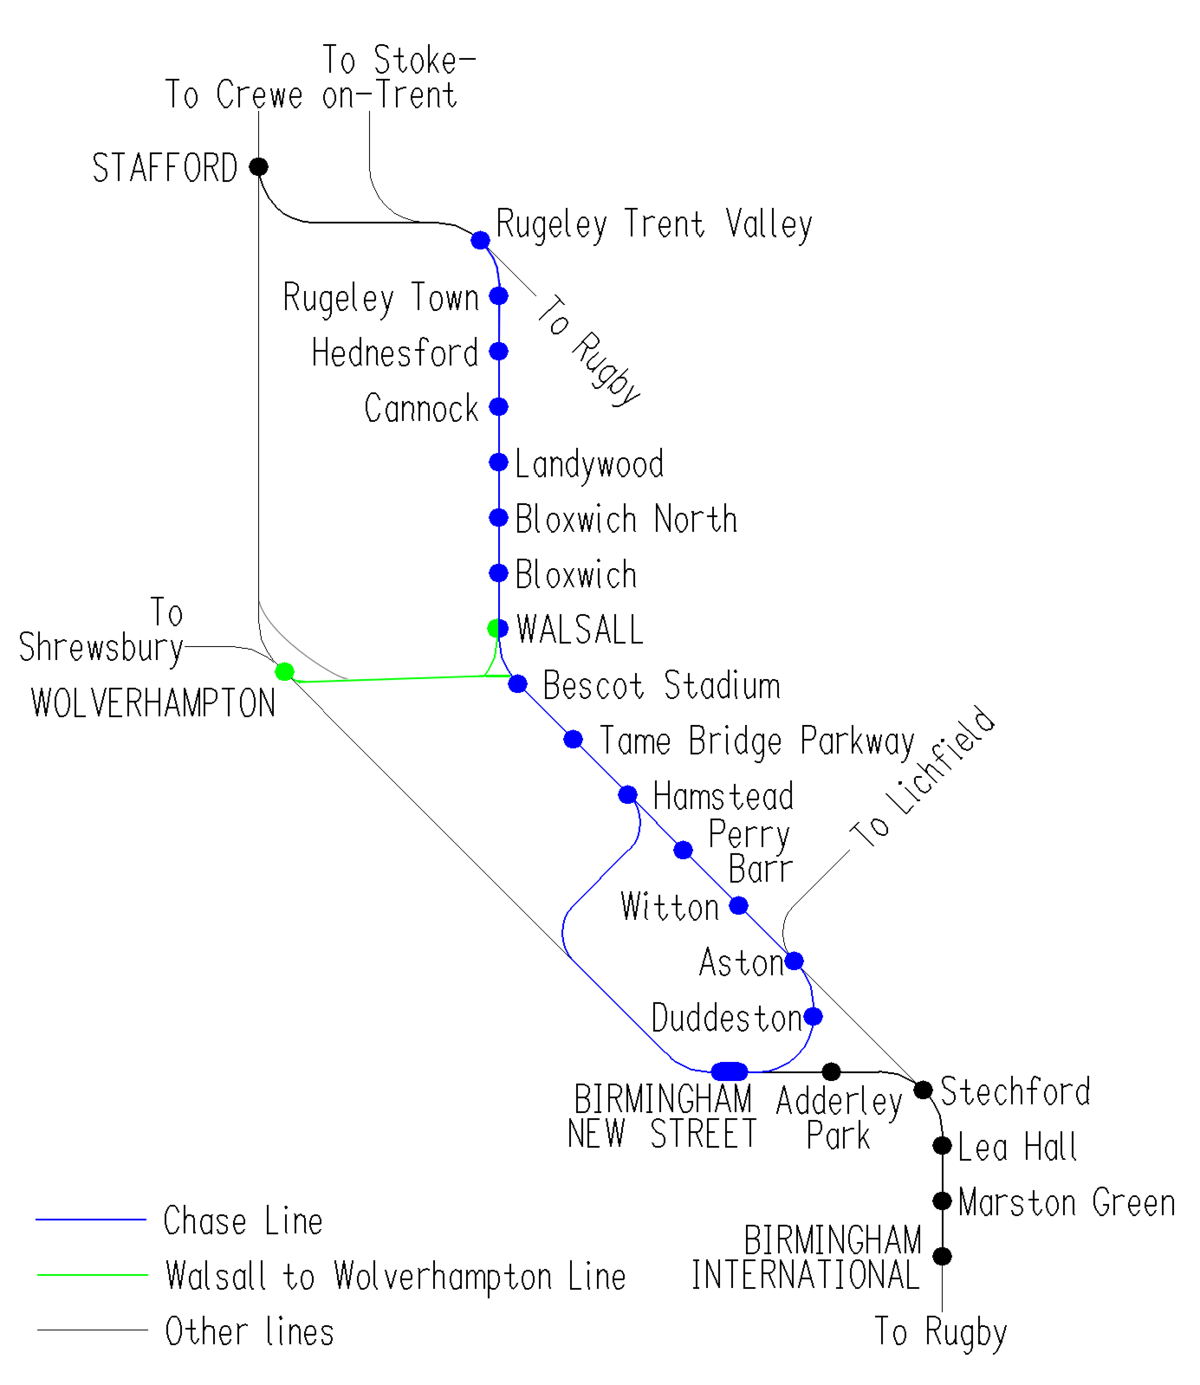 heathrow express map with Walsall Wolverh Ton Line on Austrian as well Virgin Atlantic besides Walsall Wolverh ton Line likewise Johannesburg Airport Reviews together with Victoria hotel map.